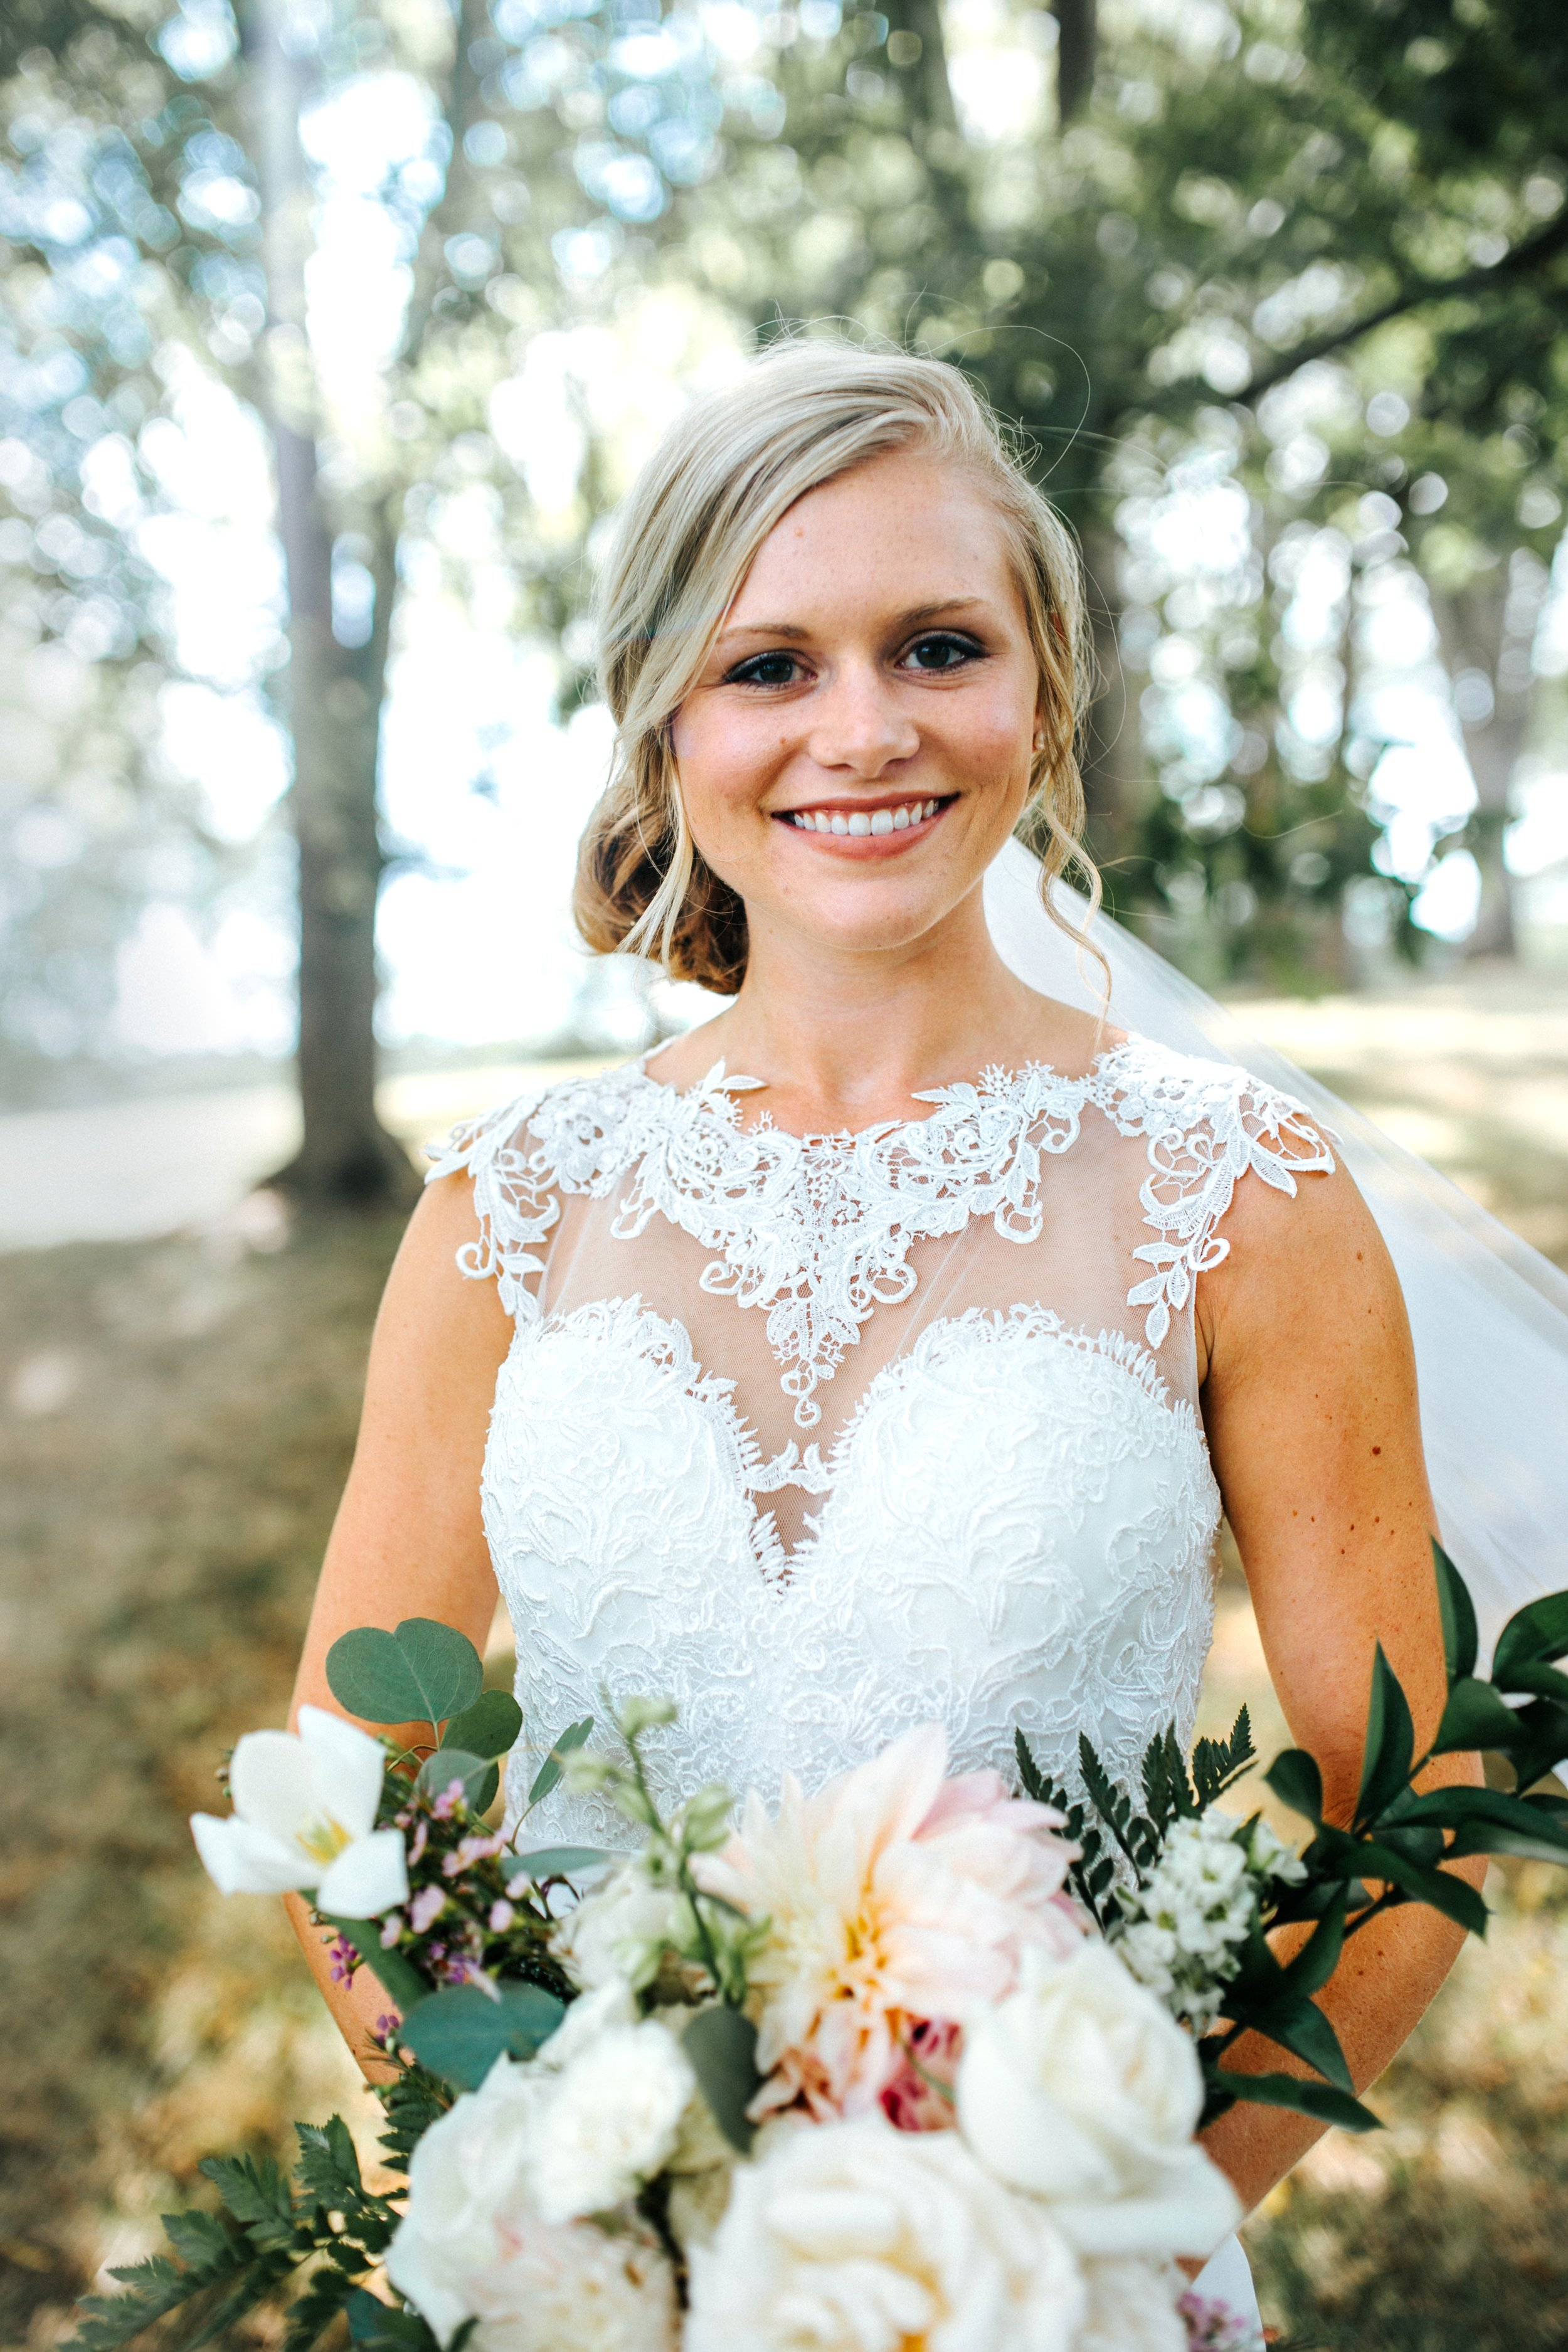 Virginia wedding photographer, Charlottesville wedding photographer, the hunt at Selma wedding, amelia virginia wedding photographer_0157.jpg